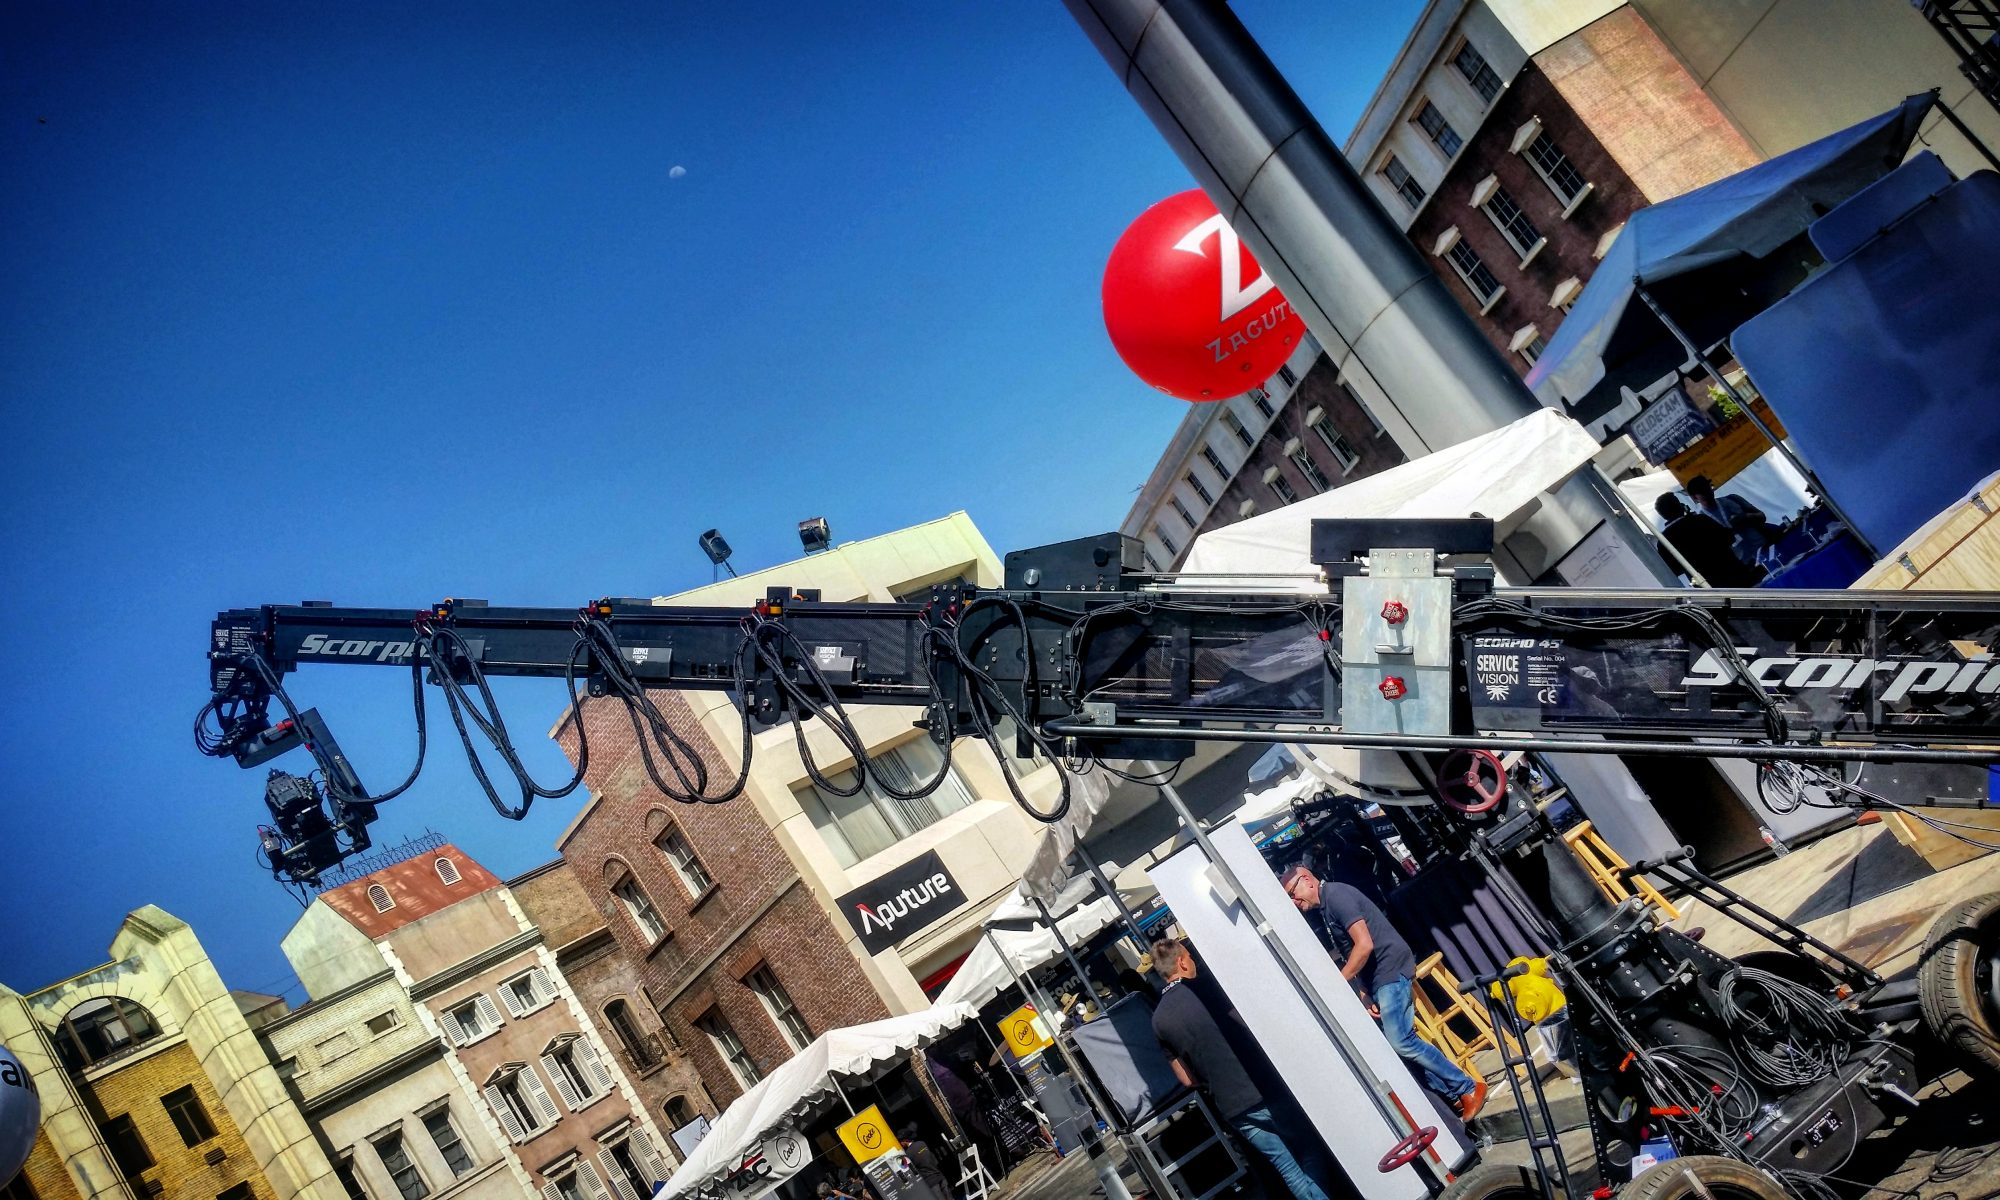 Scorpio Camera Crane at Cine Gear Expo 2017 at Paramount Pictures- by Socialbilitty